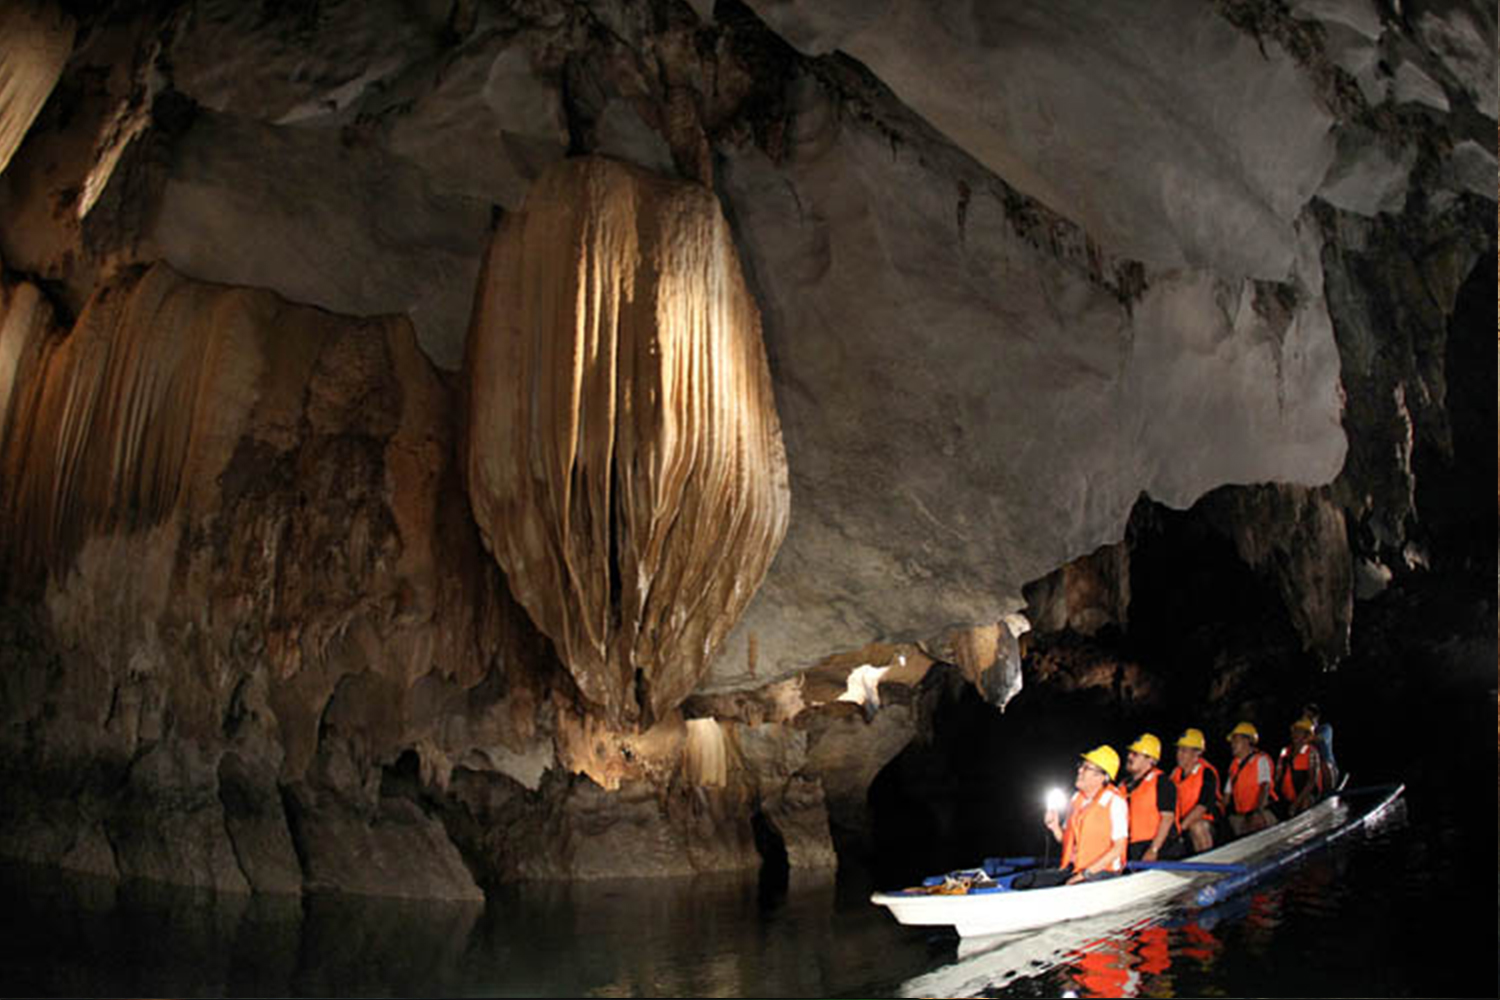 the puerto princesa subterranean river national Report on the iucn reactive monitoring mission to puerto-princesa subterranean river national park (philippines), 30 november - 5 december 2014 state of conservation reports by states parties 2016.